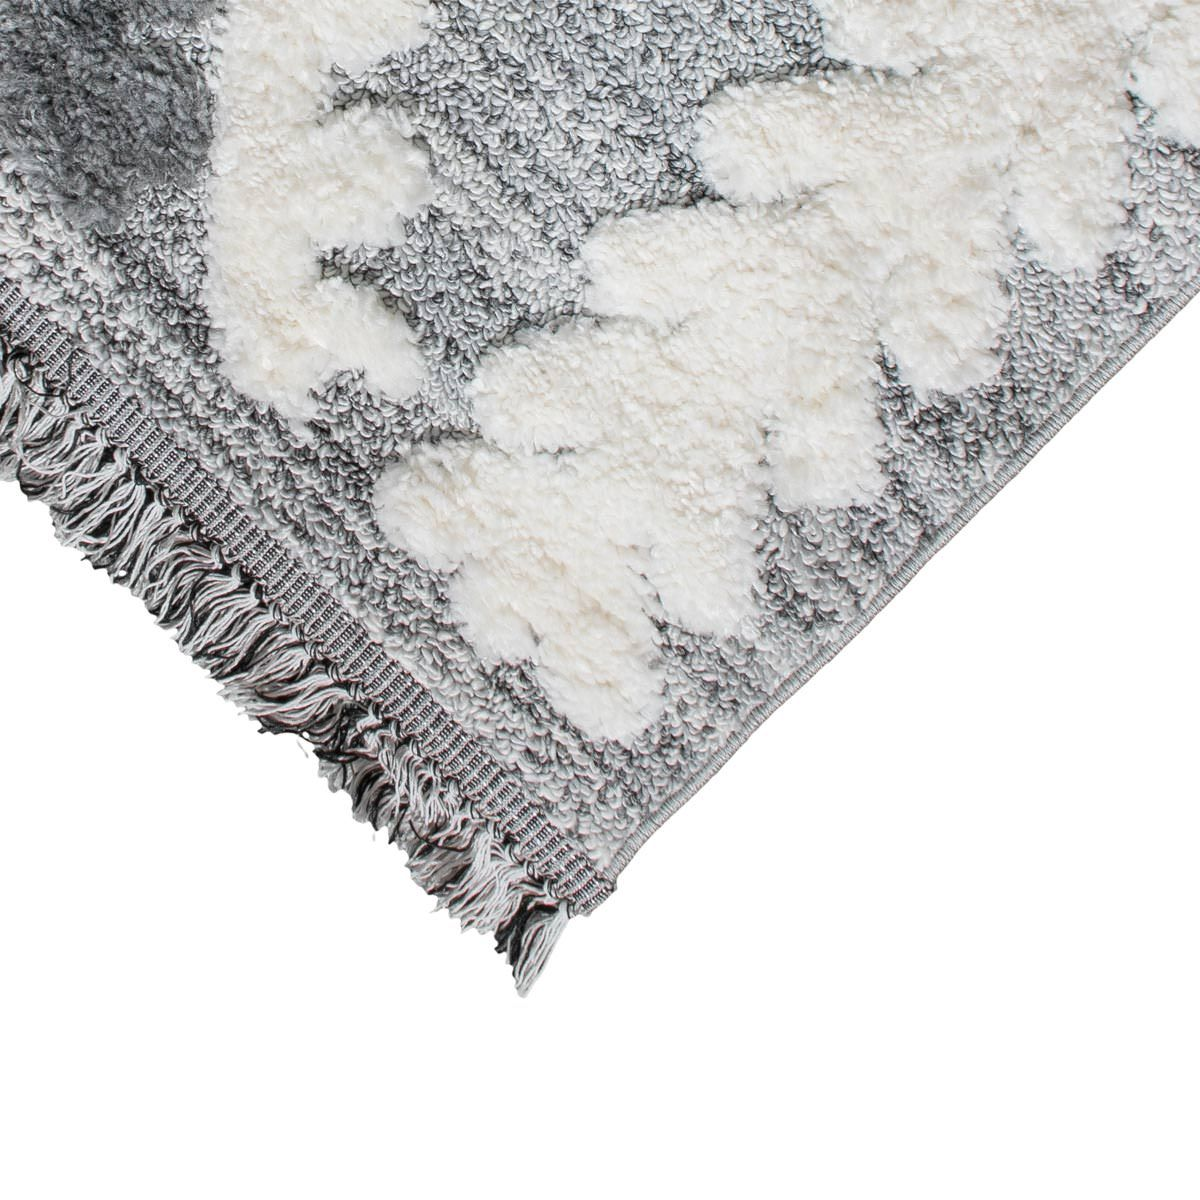 Atlas Rug 08 Grey - Fringes 2